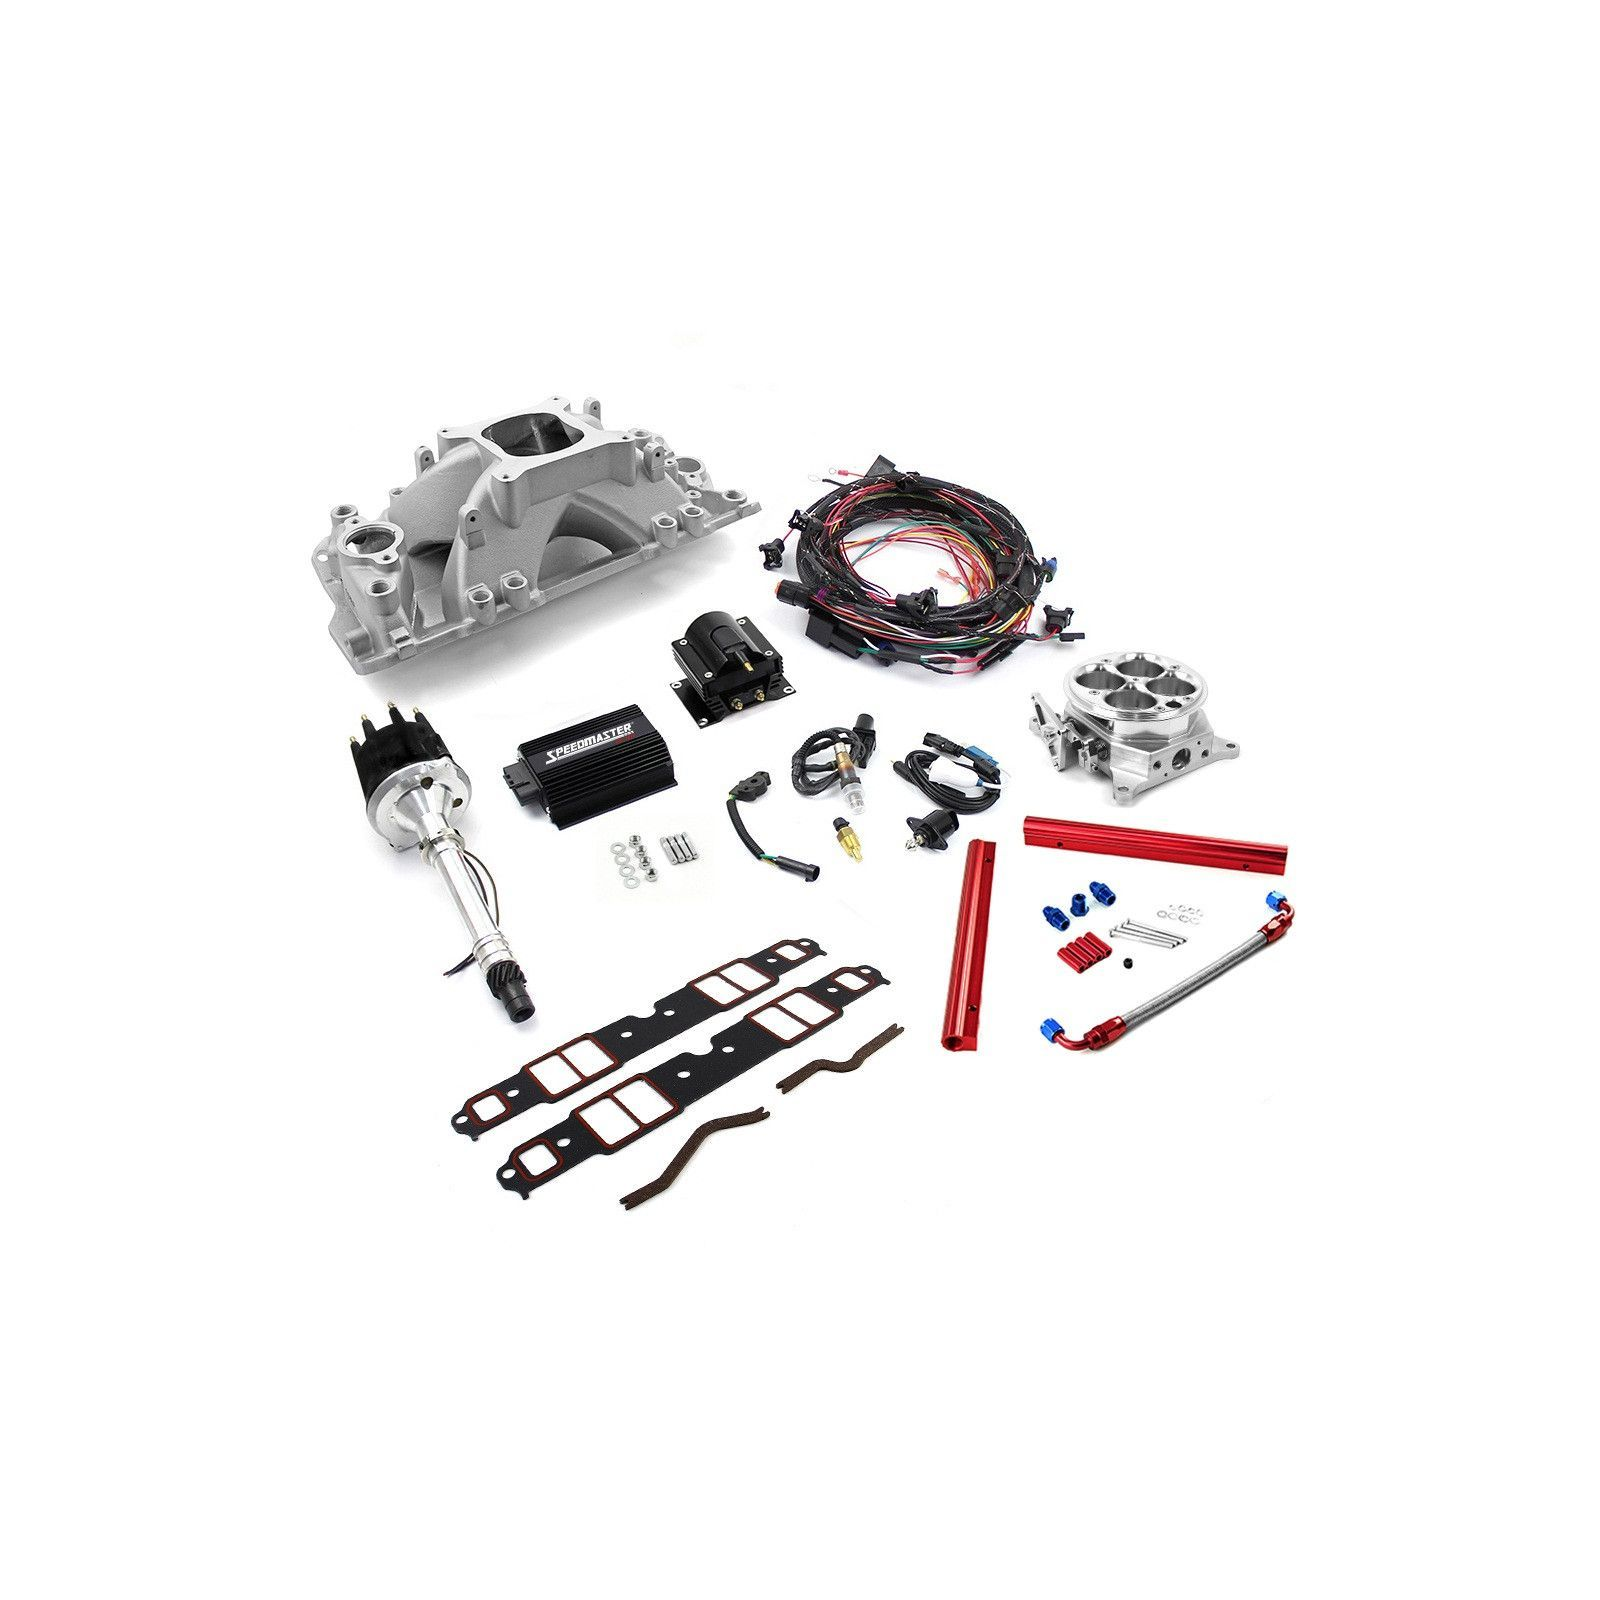 chevy sbc 350 self learning turnkey efi single throttle body system kit